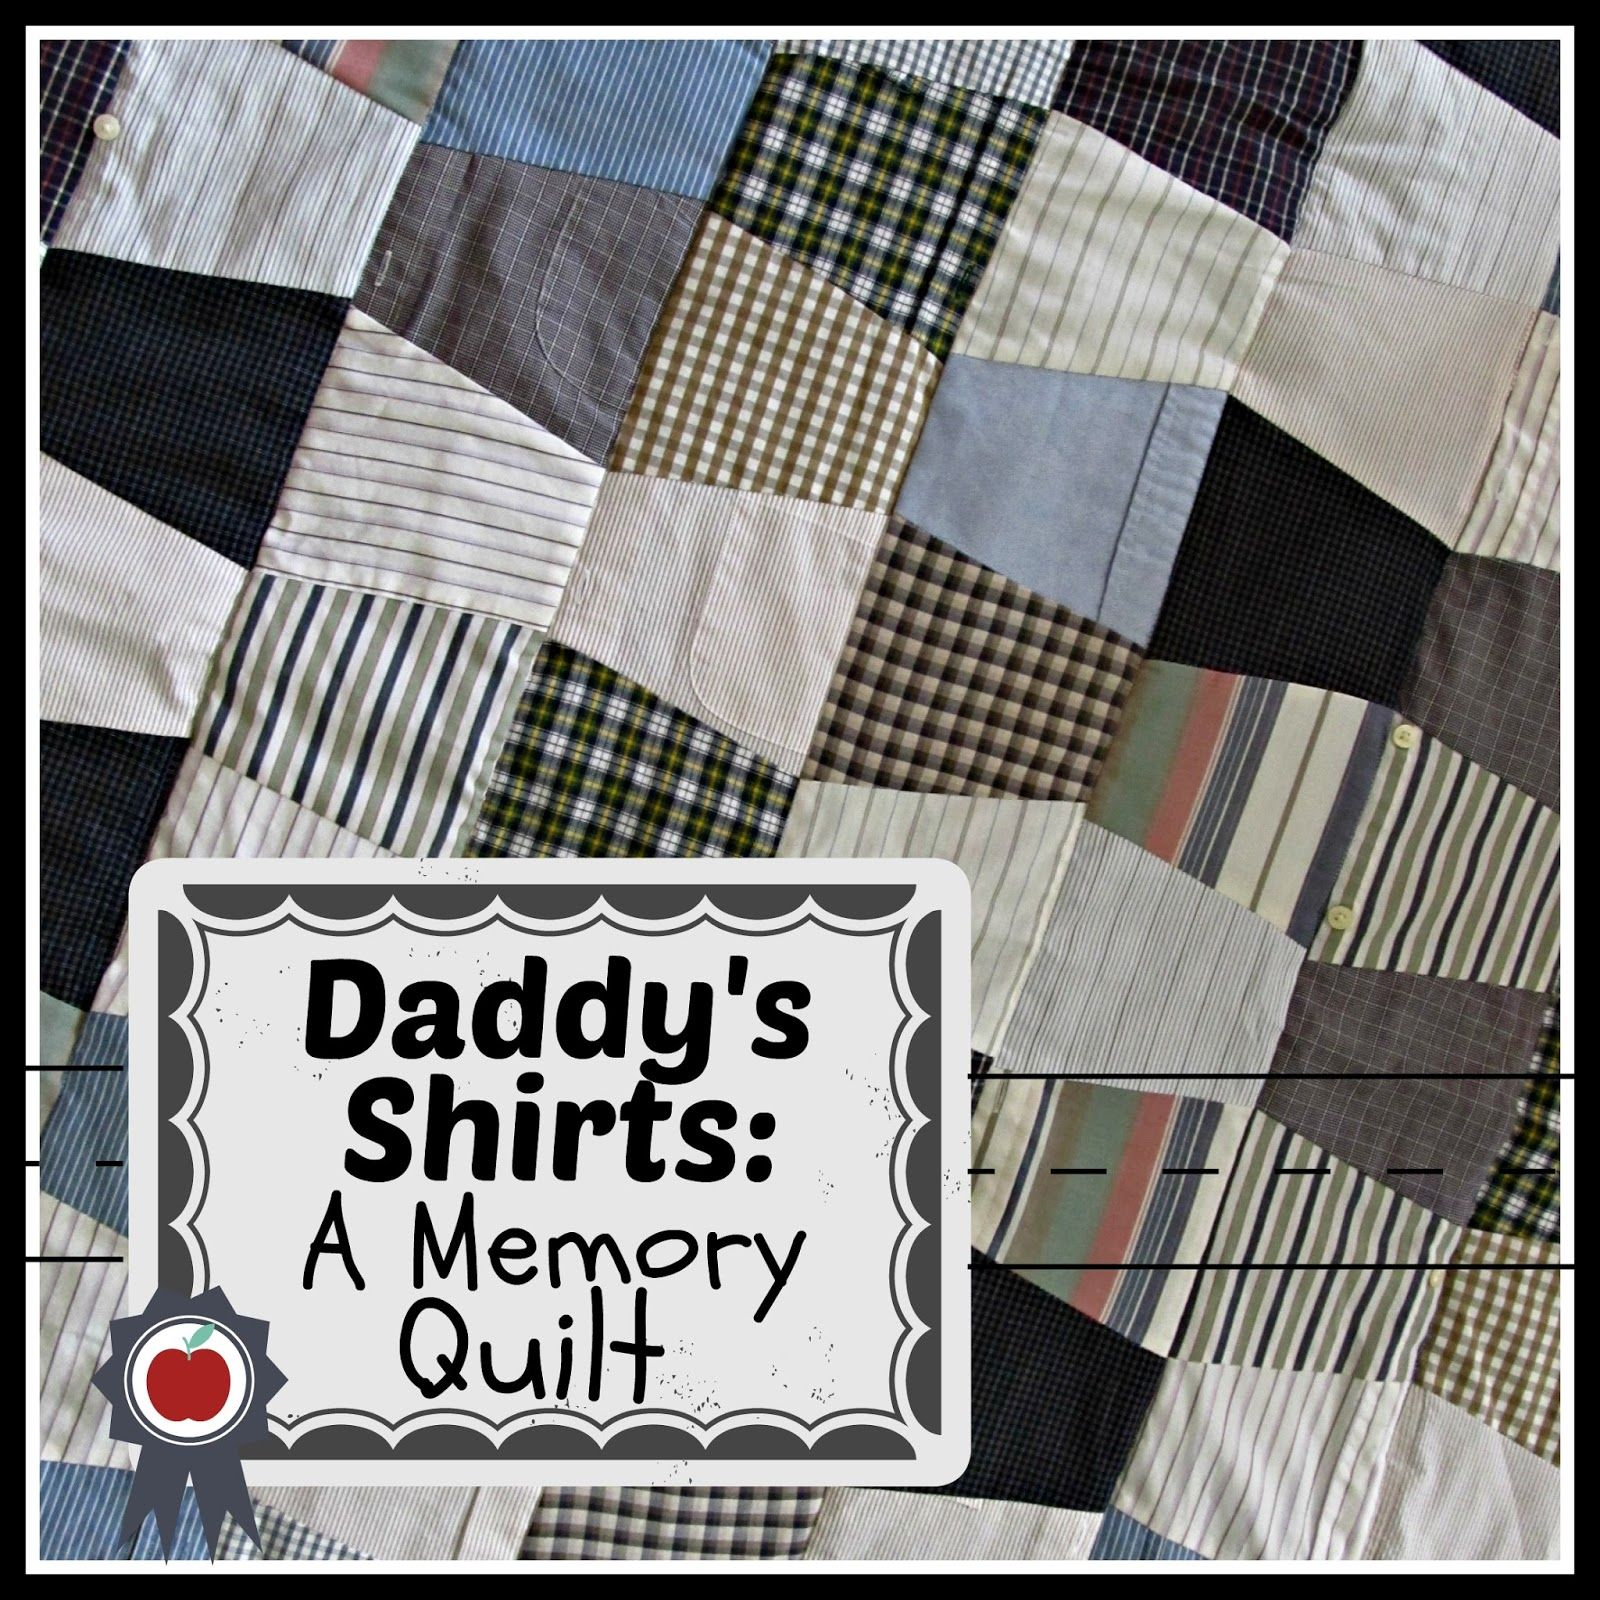 Queen B - Creative Me: Daddy's Shirts : A Memory Quilt | Quilting ... : memory quilts from old clothes - Adamdwight.com